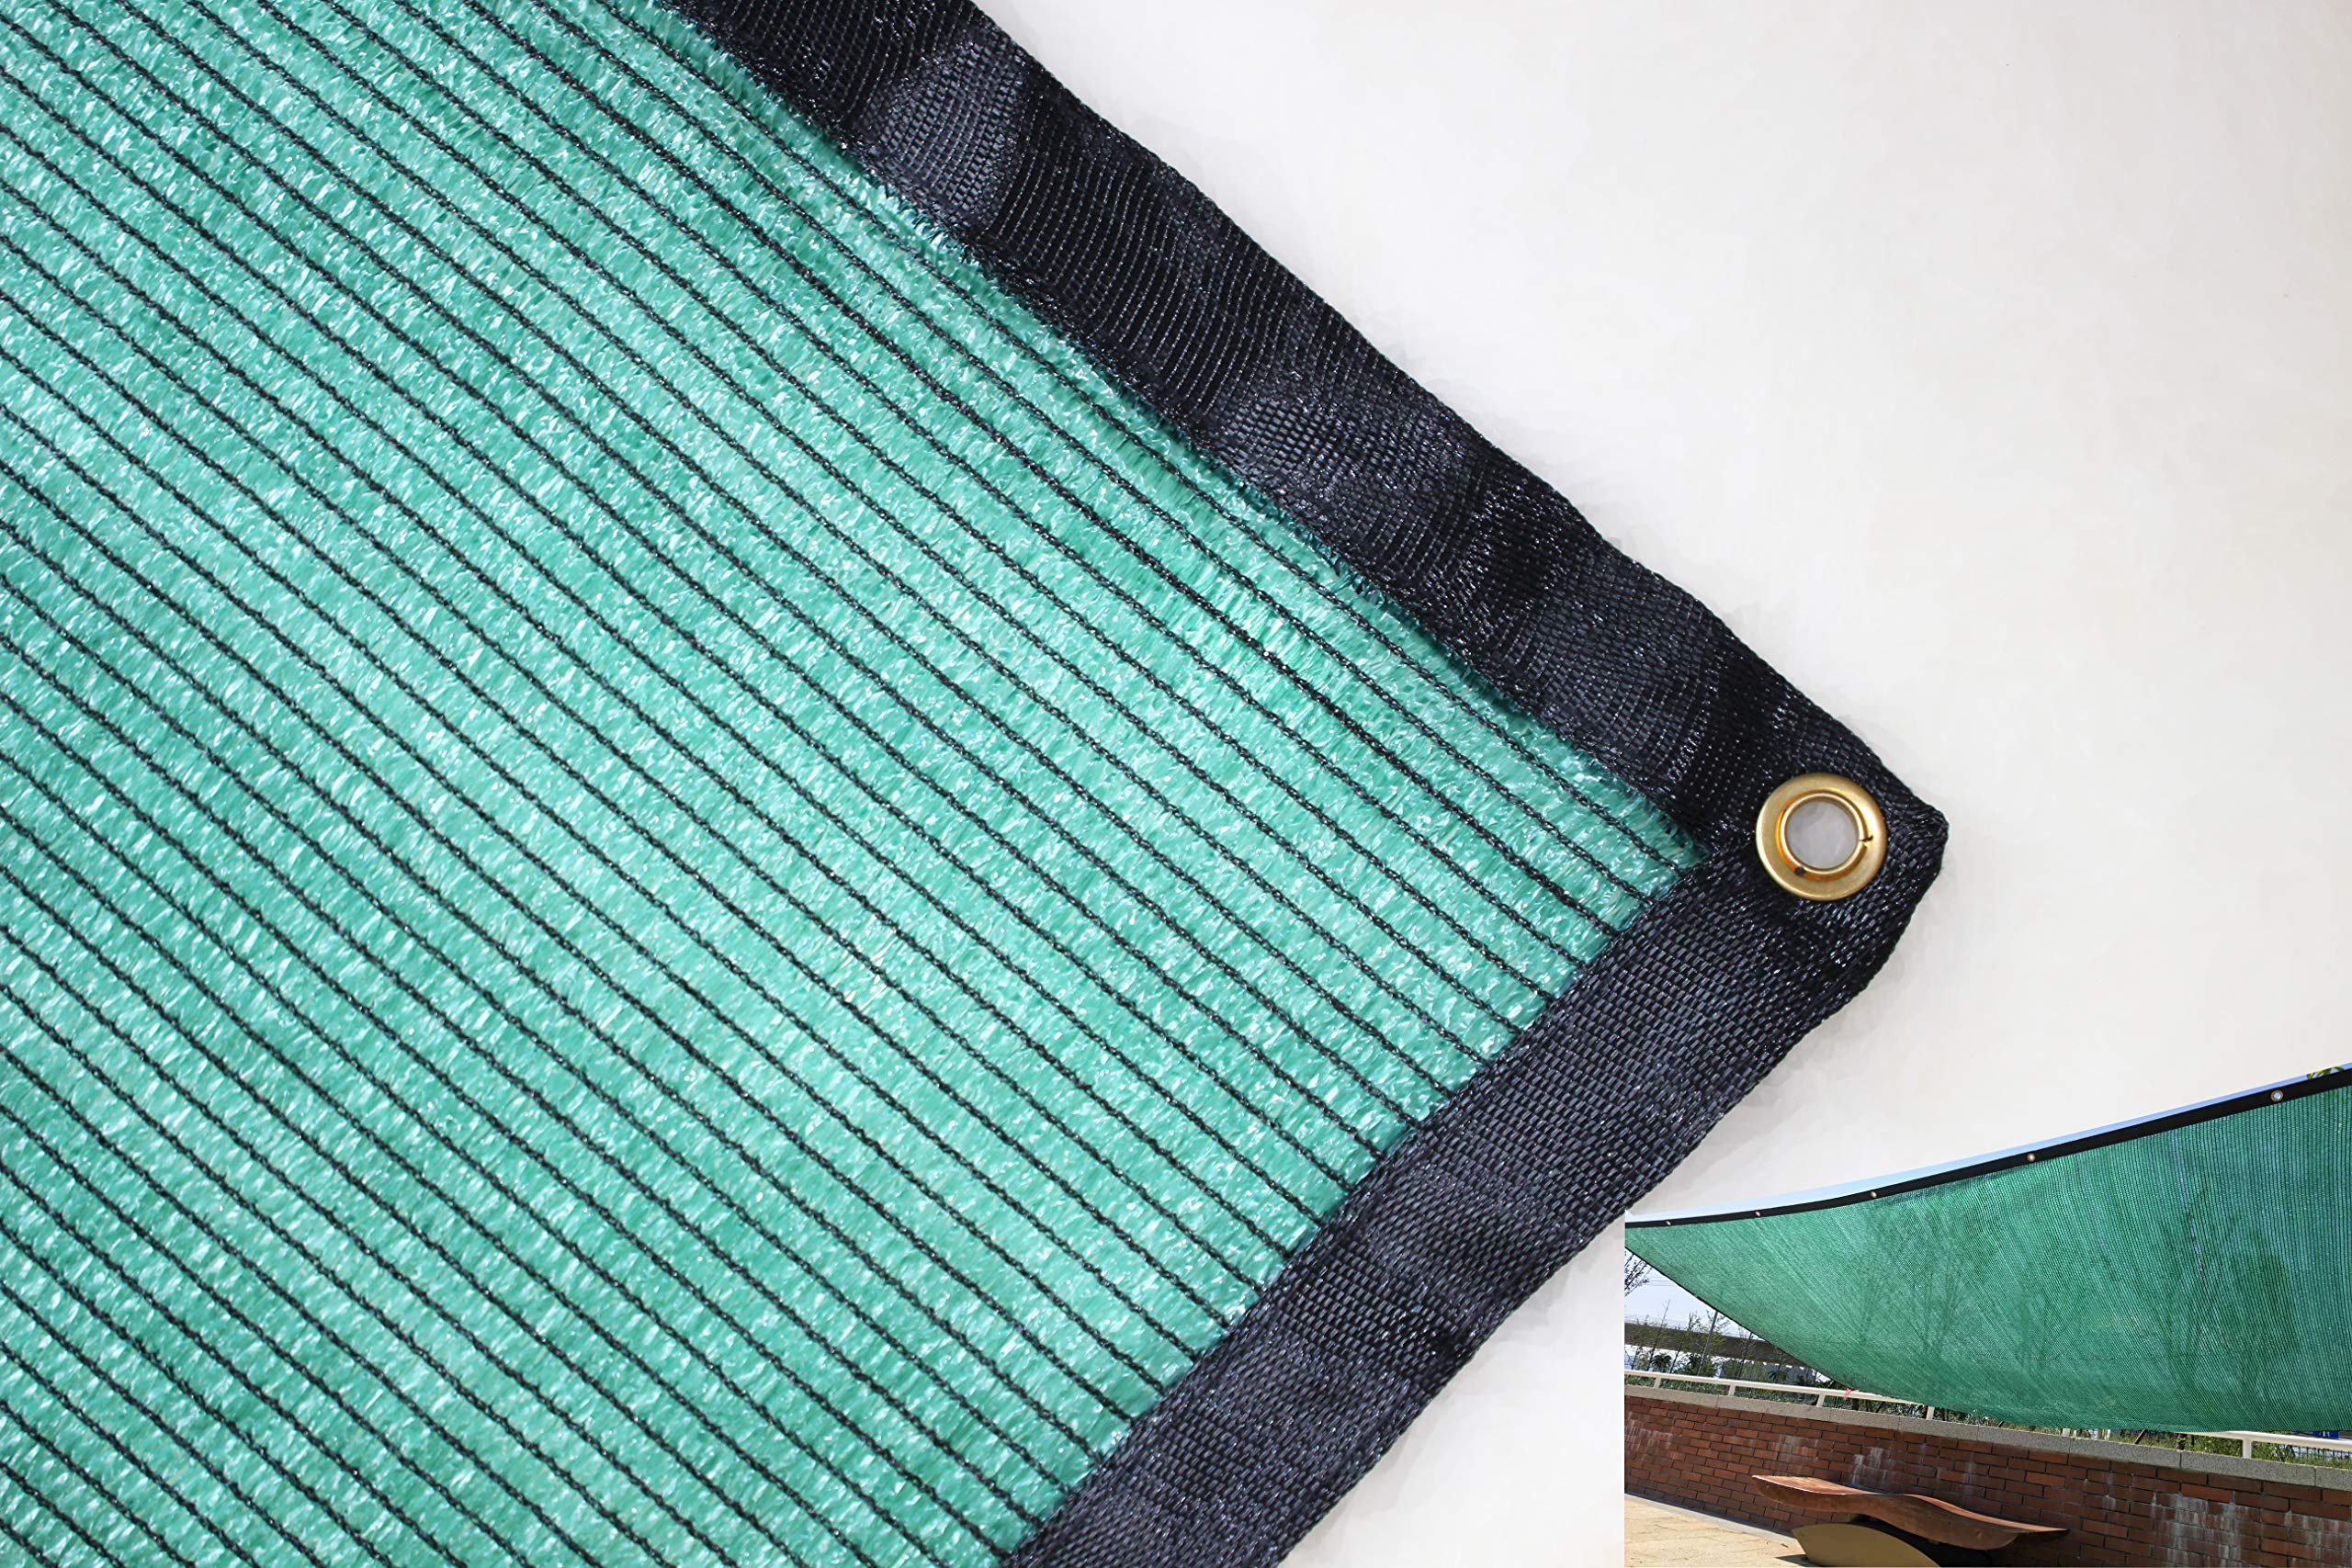 YGS 40% Green 20 ft x 24 ft Shade Cloth UV Resistant Net For Garden Flower Plant by YGS88